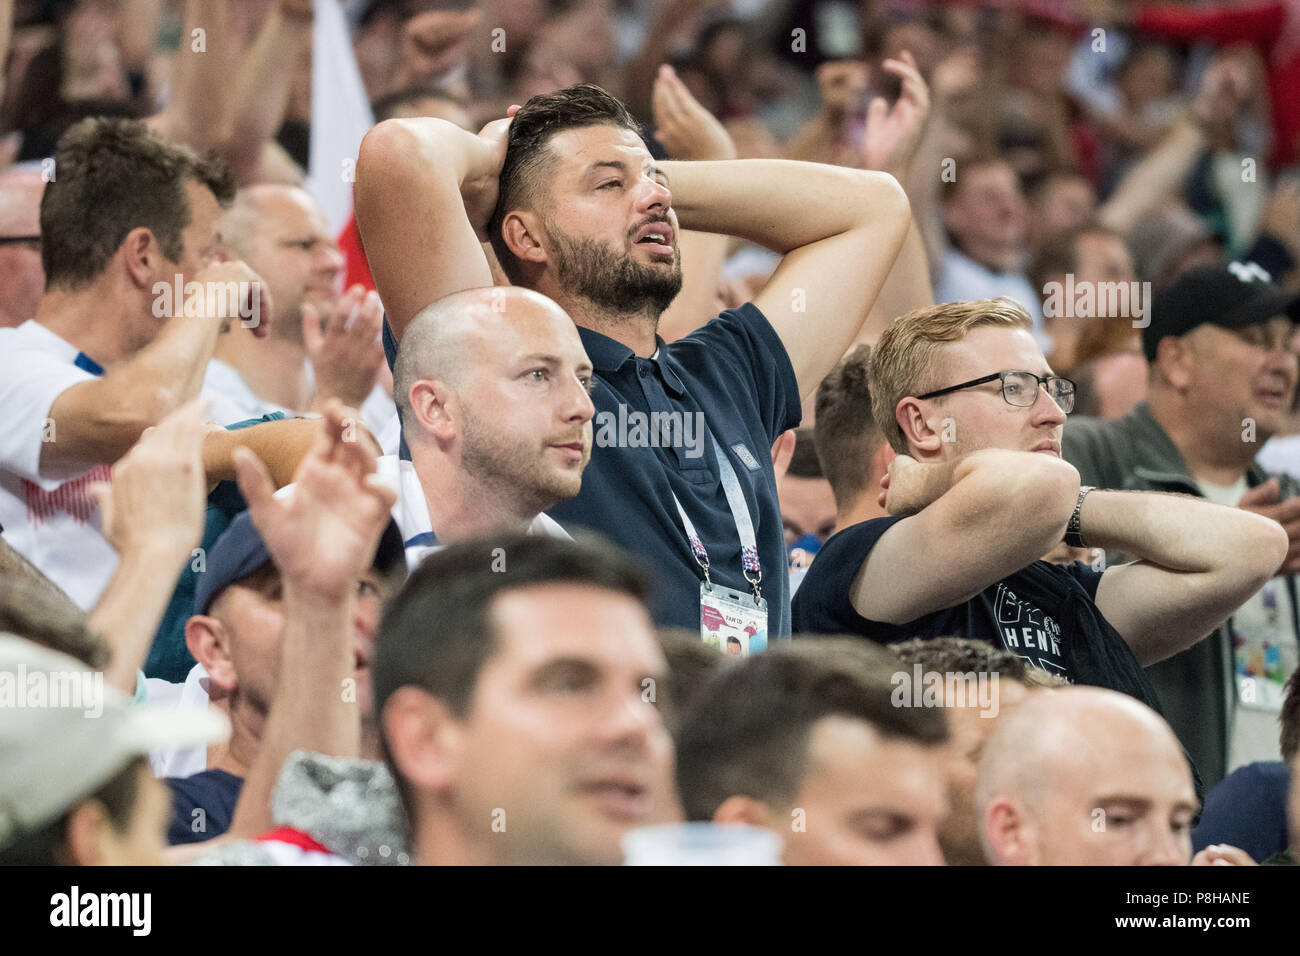 English fans are disappointed, disappointed, disappointed, disappointed, sad, frustrated, frustrated, hastate, half figure, half figure, fan, fans, spectators, supporters, supporters, Croatia (CRO) - England (ENG) 2: 1, semi-finals, Game 62, on 11.07.2018 in Moscow; Football World Cup 2018 in Russia from 14.06. - 15.07.2018. | Usage worldwide Stock Photo